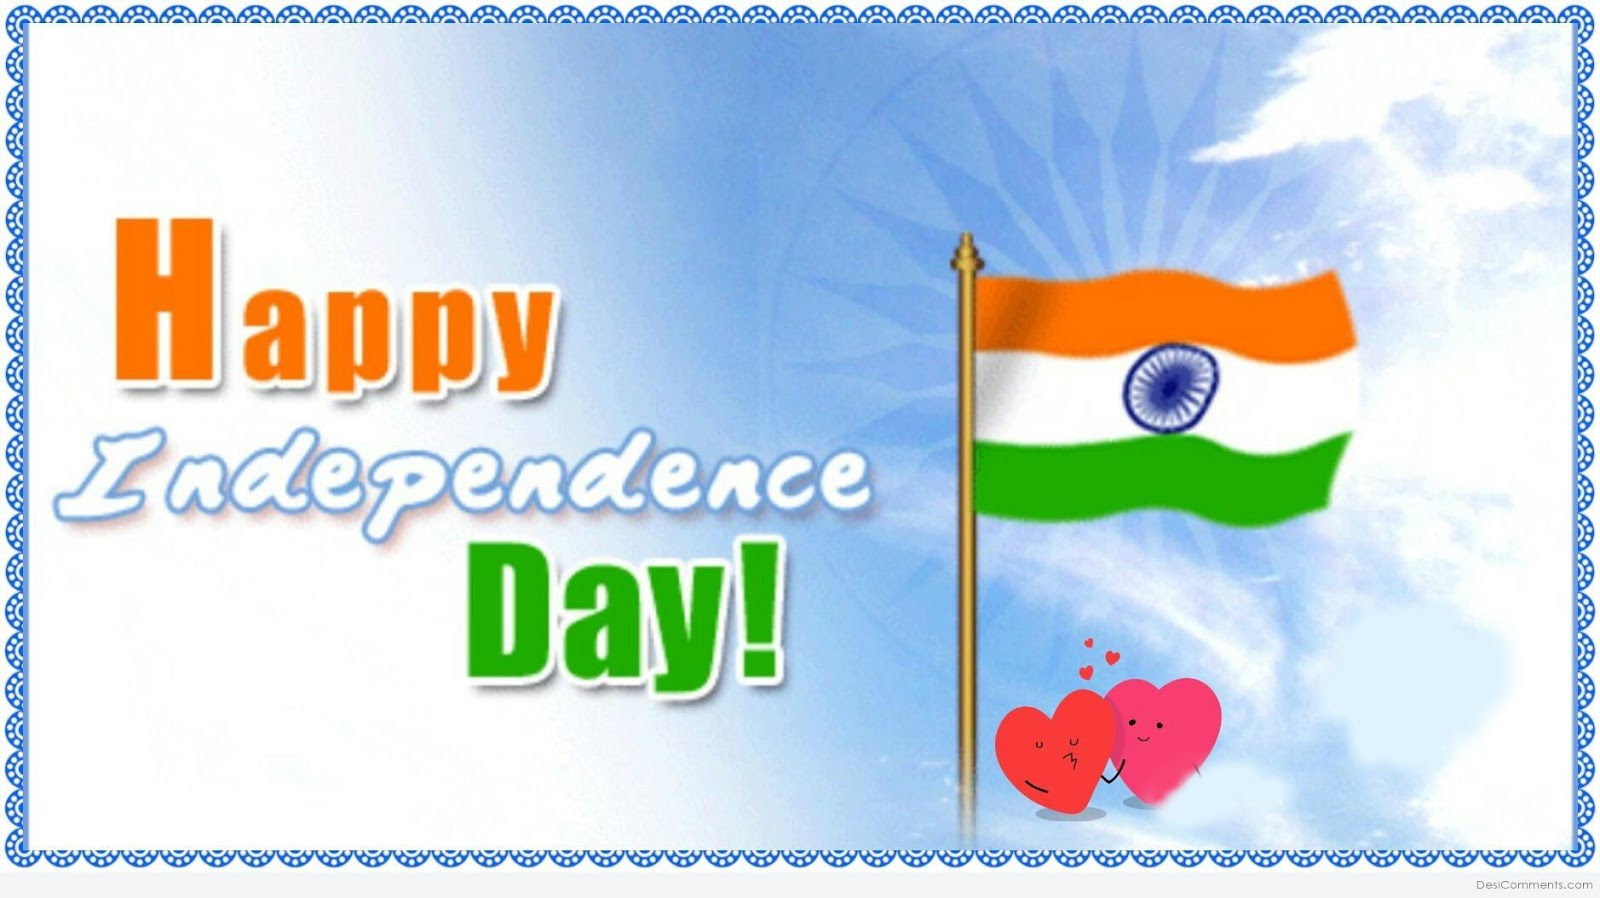 Day Happy Hd Indpeneence: (New) Happy Independentday 2016 Wishing Images, Quotes And